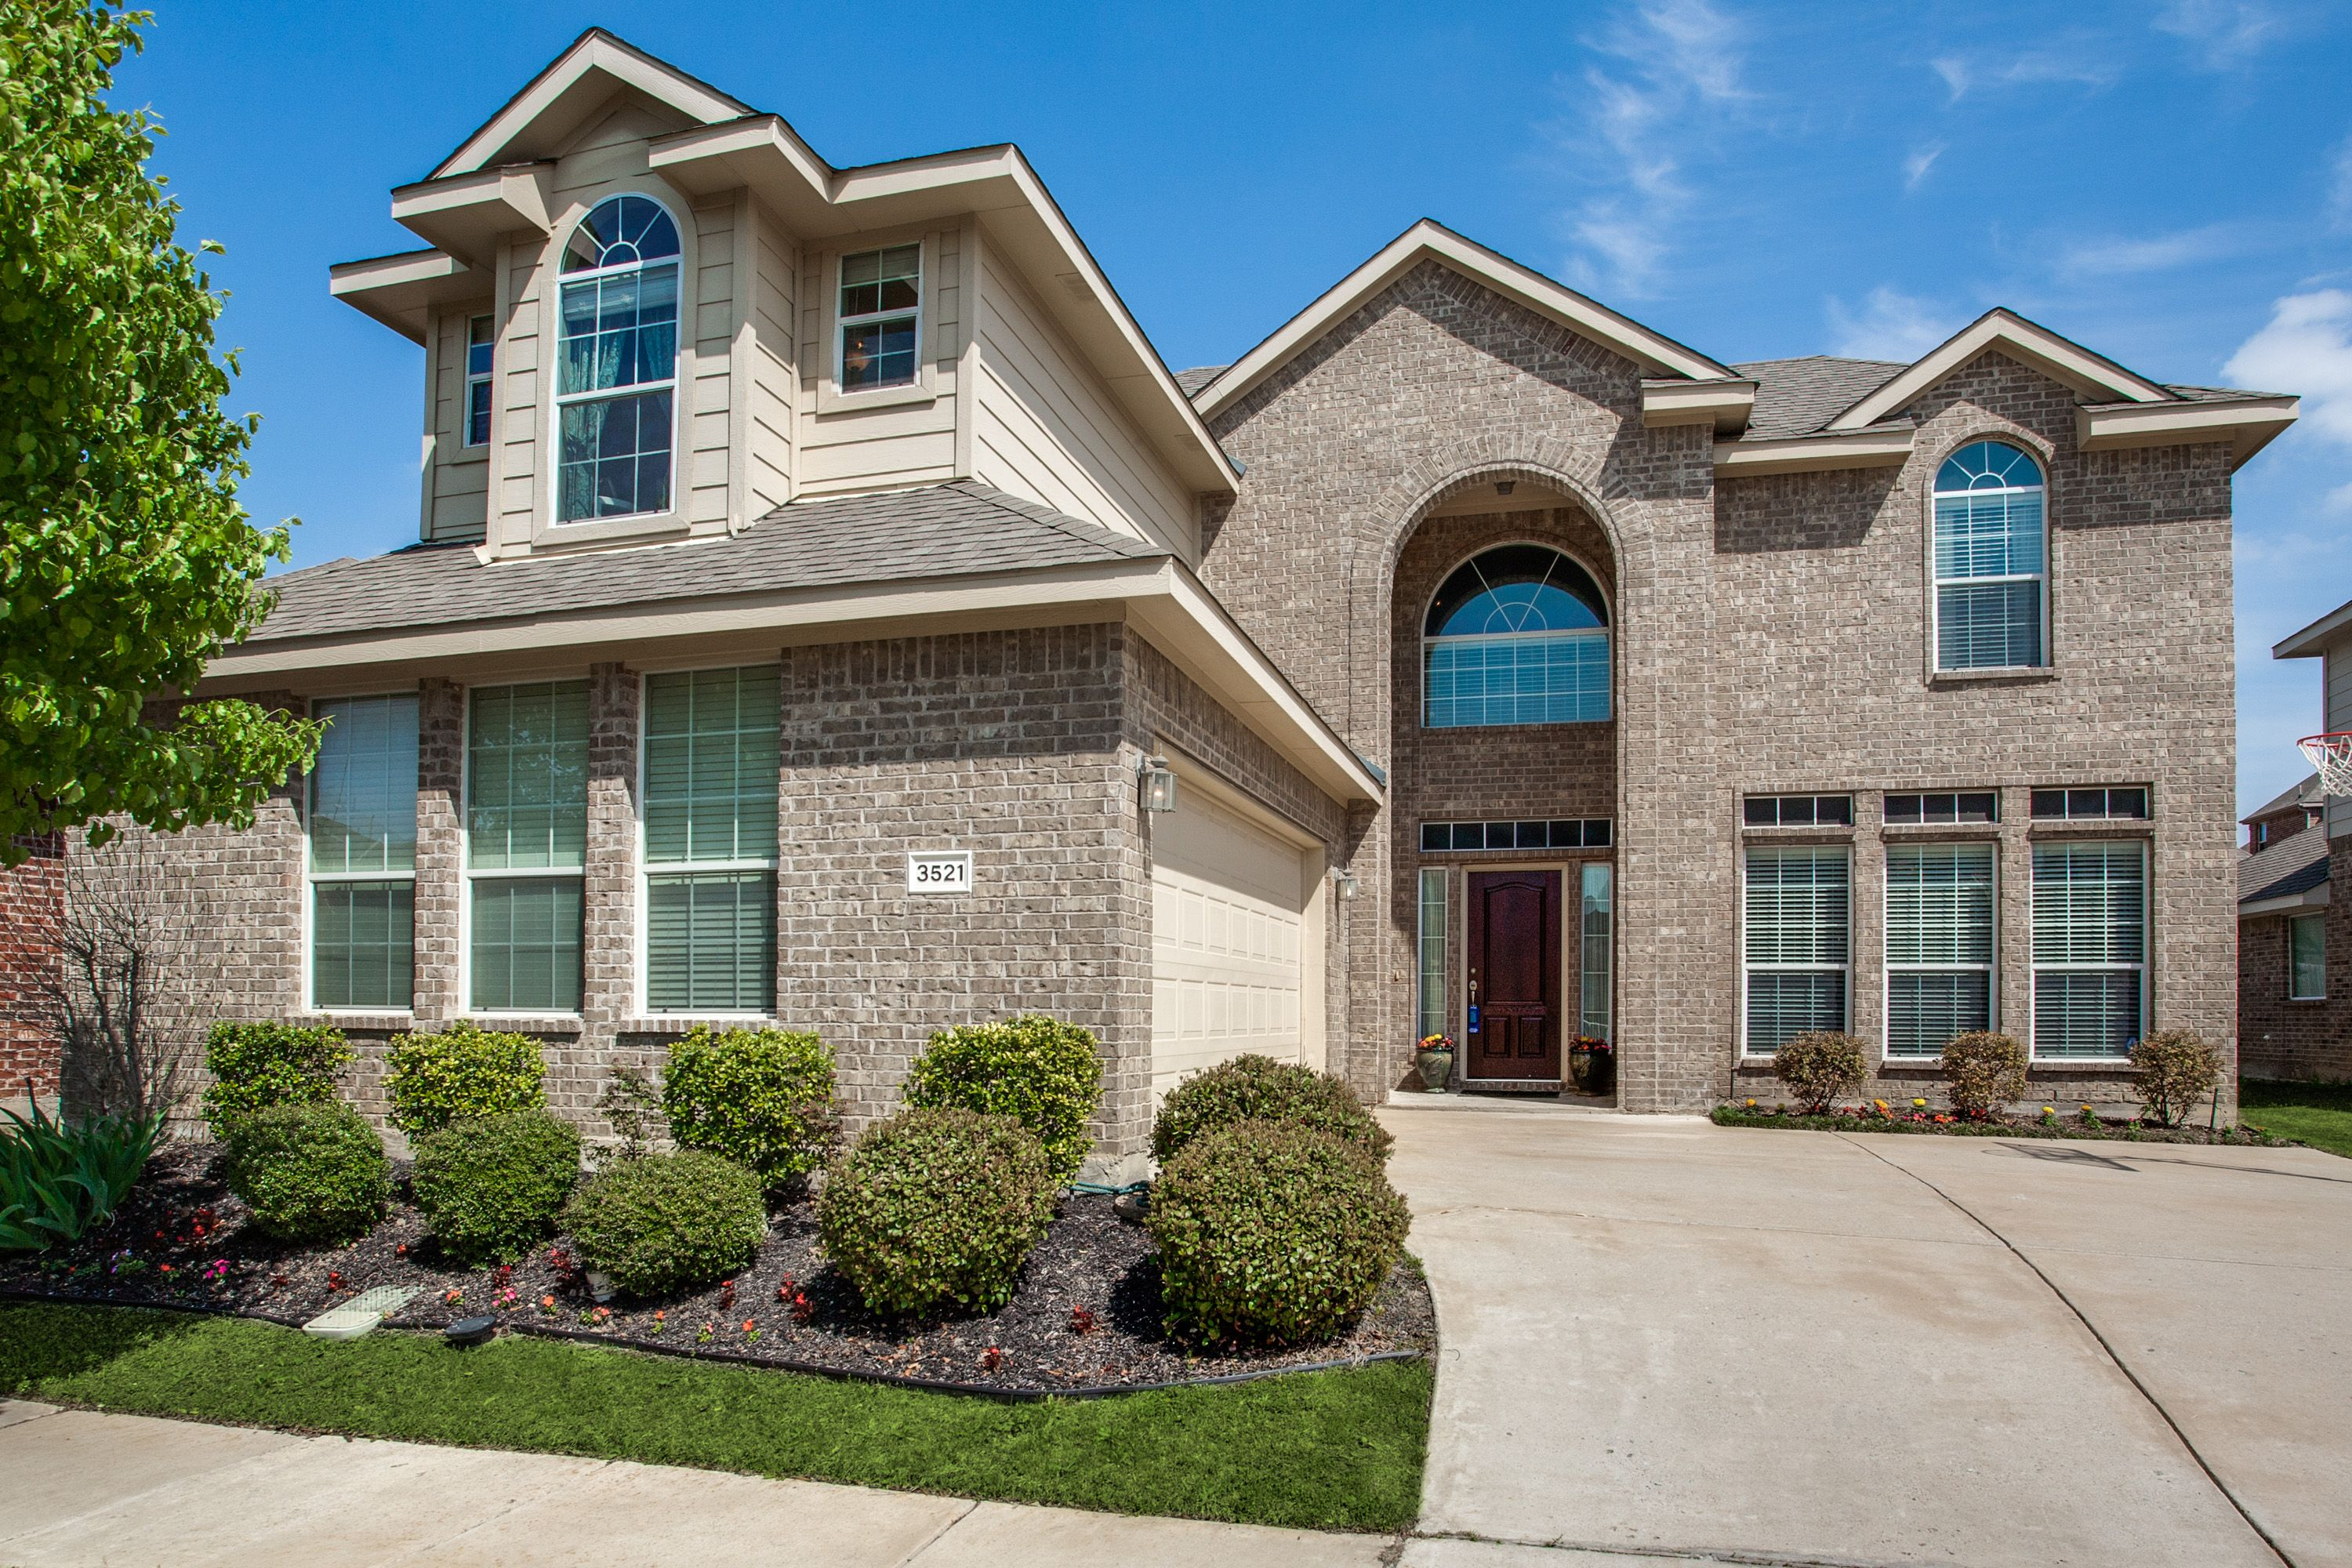 Awesome NEW LISTING! Check out this amazing home in Craig